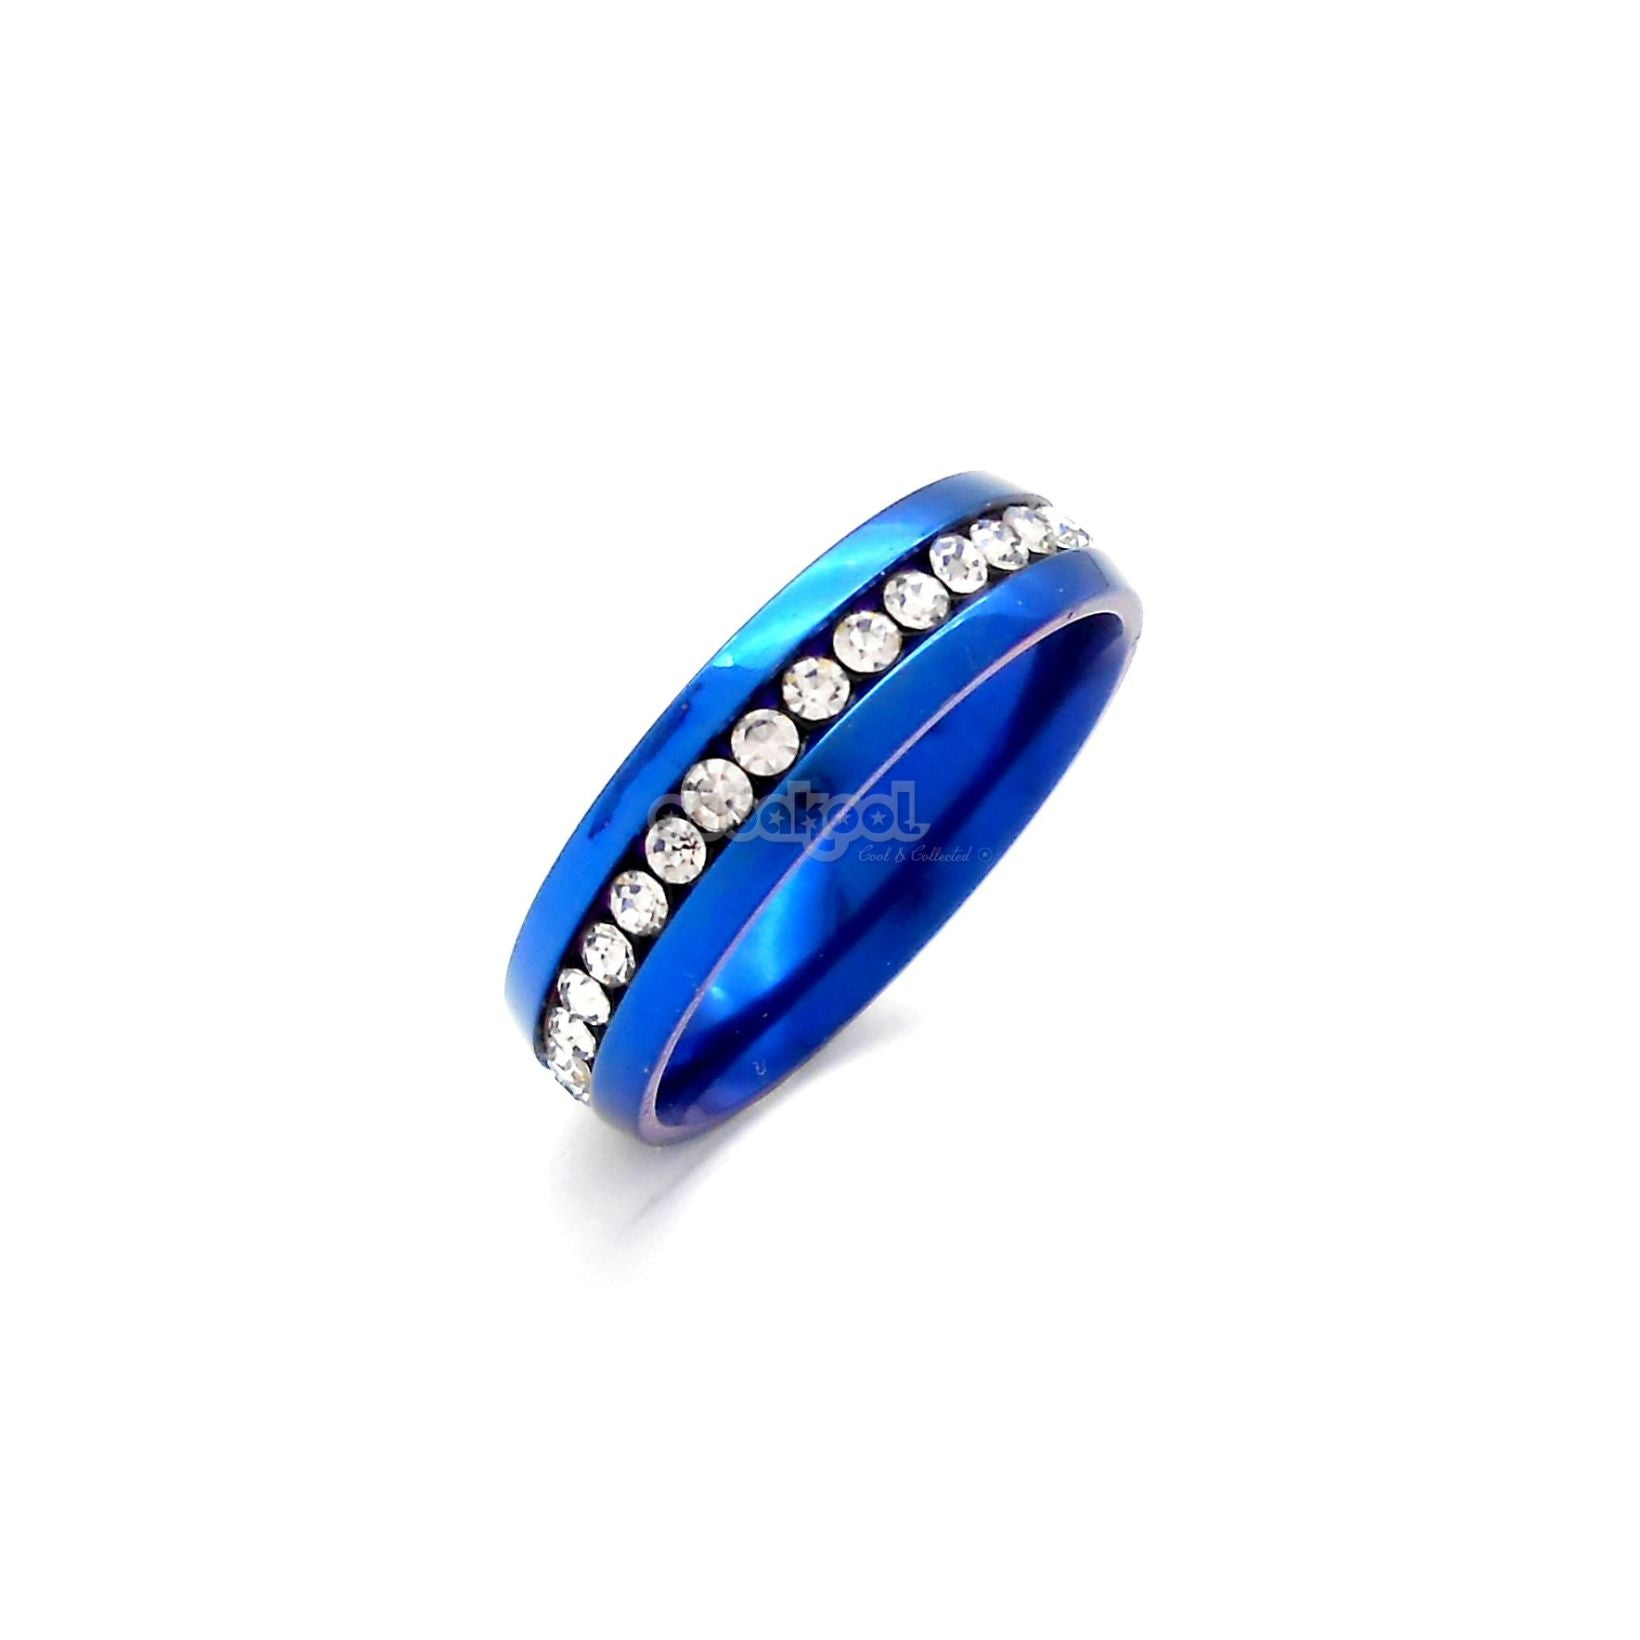 Commitment Ring / Midnight Blue With Diamante Inlay Alloy Steel Size 10